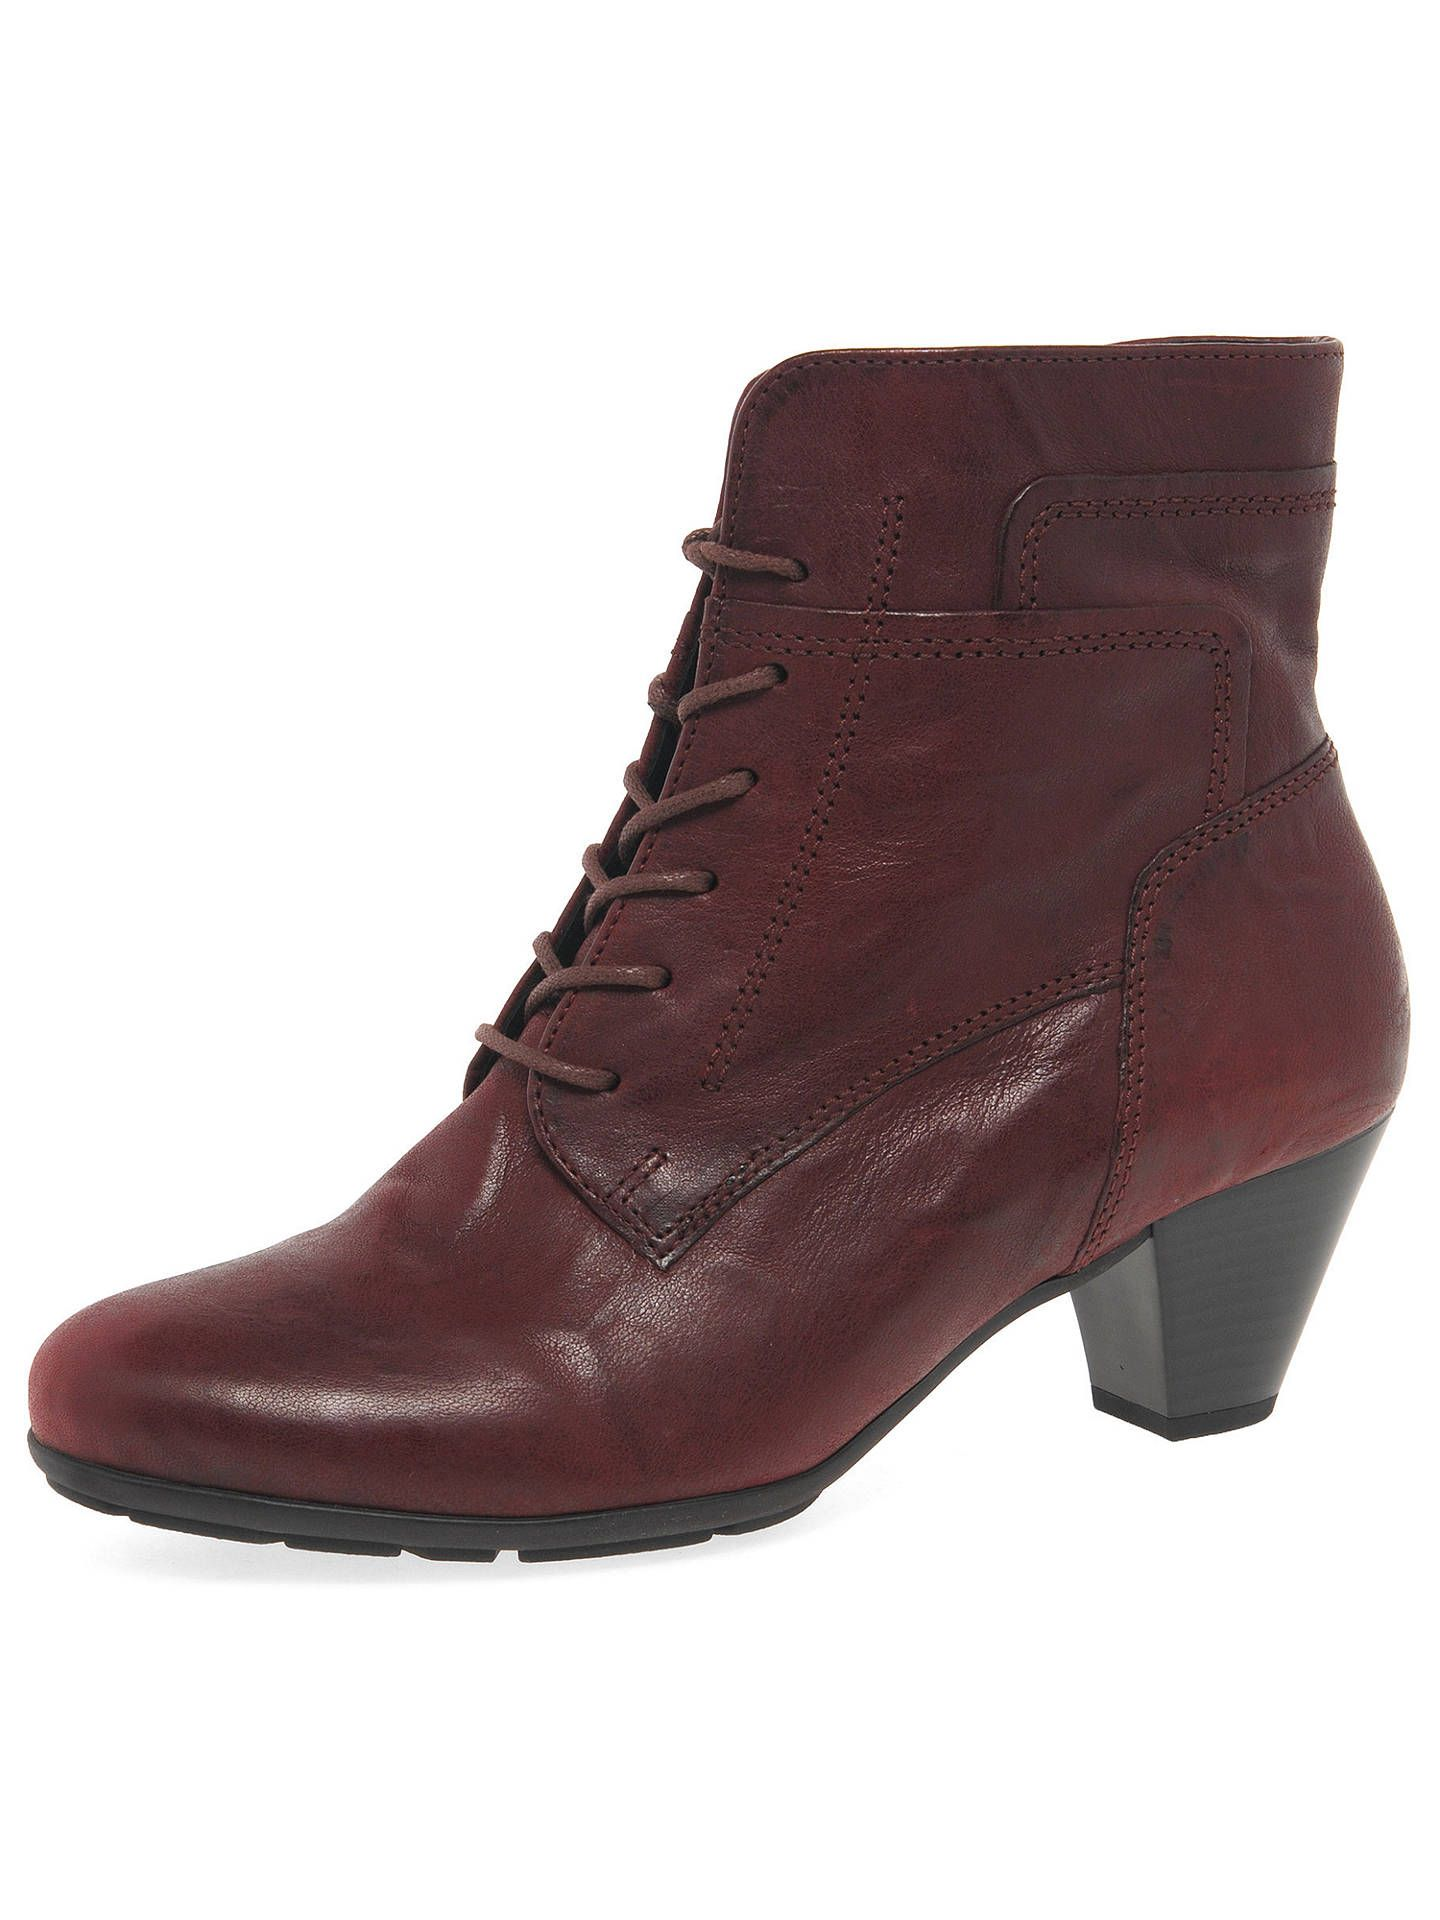 6496a222a22e4 BuyGabor National Lace Up Cone Heel Ankle Boots, Merlot Leather, 3 Online  at johnlewis.com